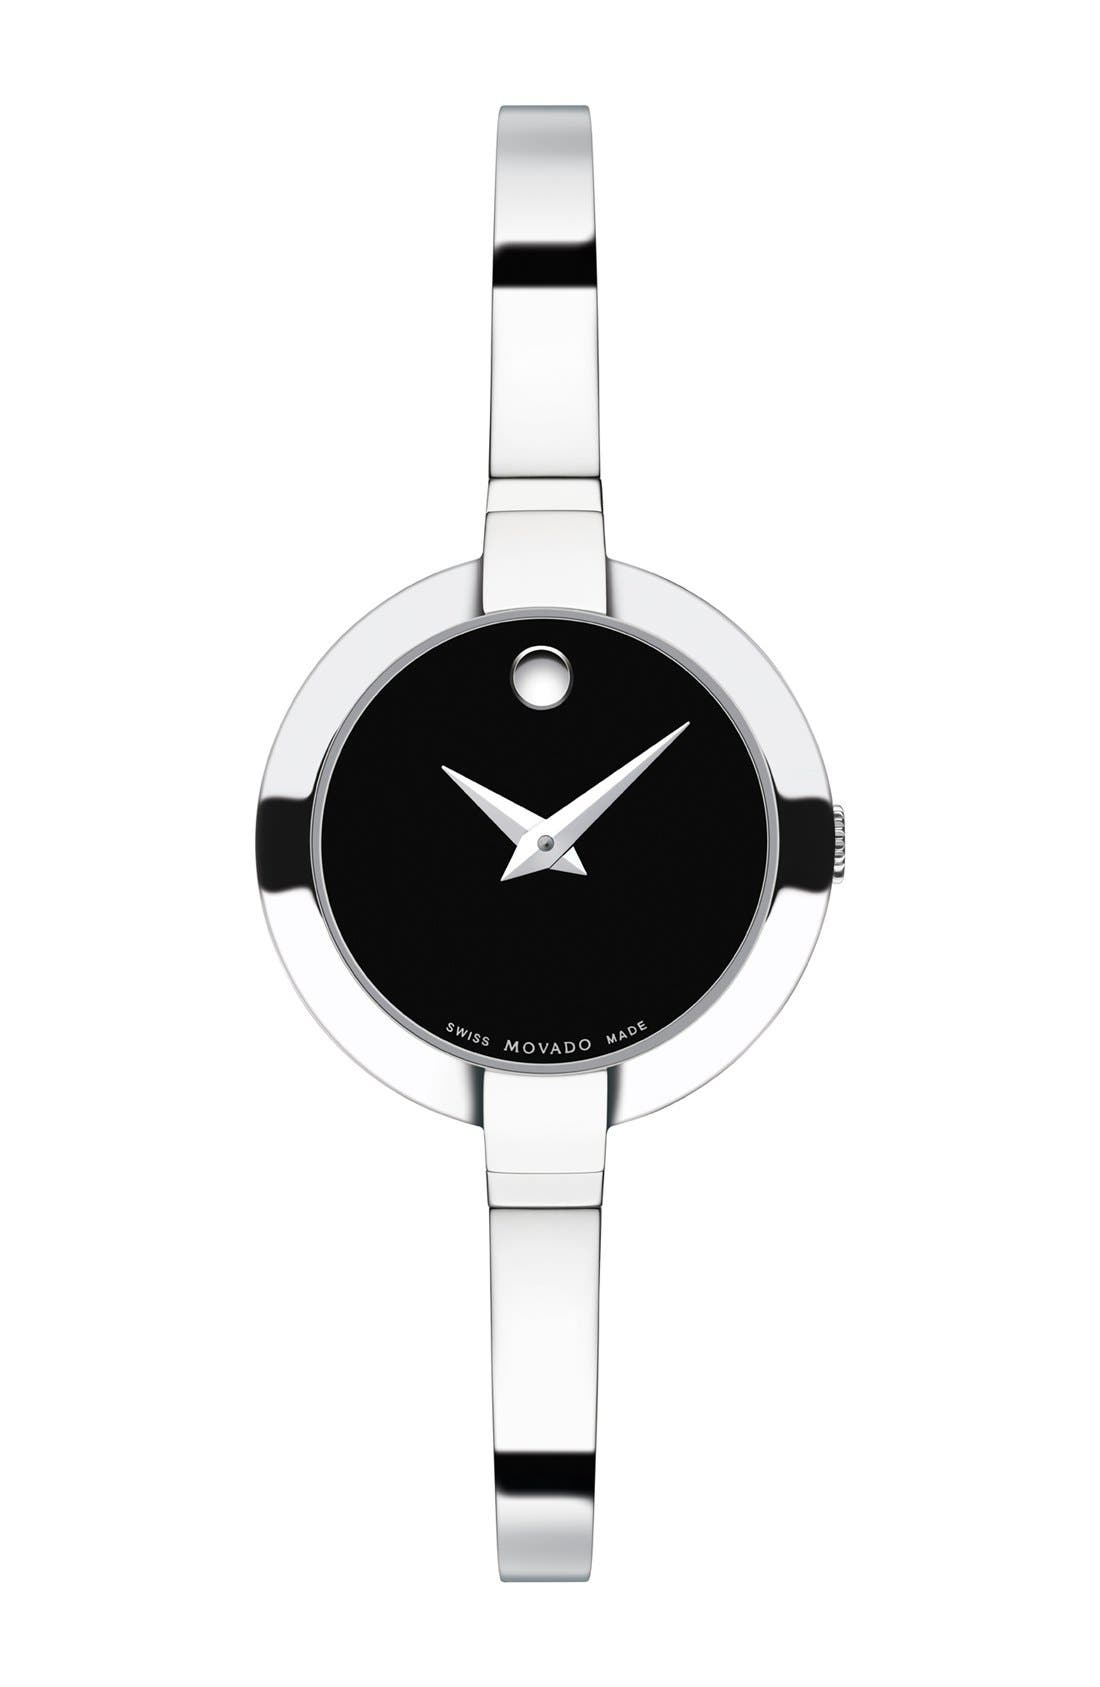 Main Image - Movado 'Bela' Bangle Watch, 25mm (Regular Retail Price: $495.00)